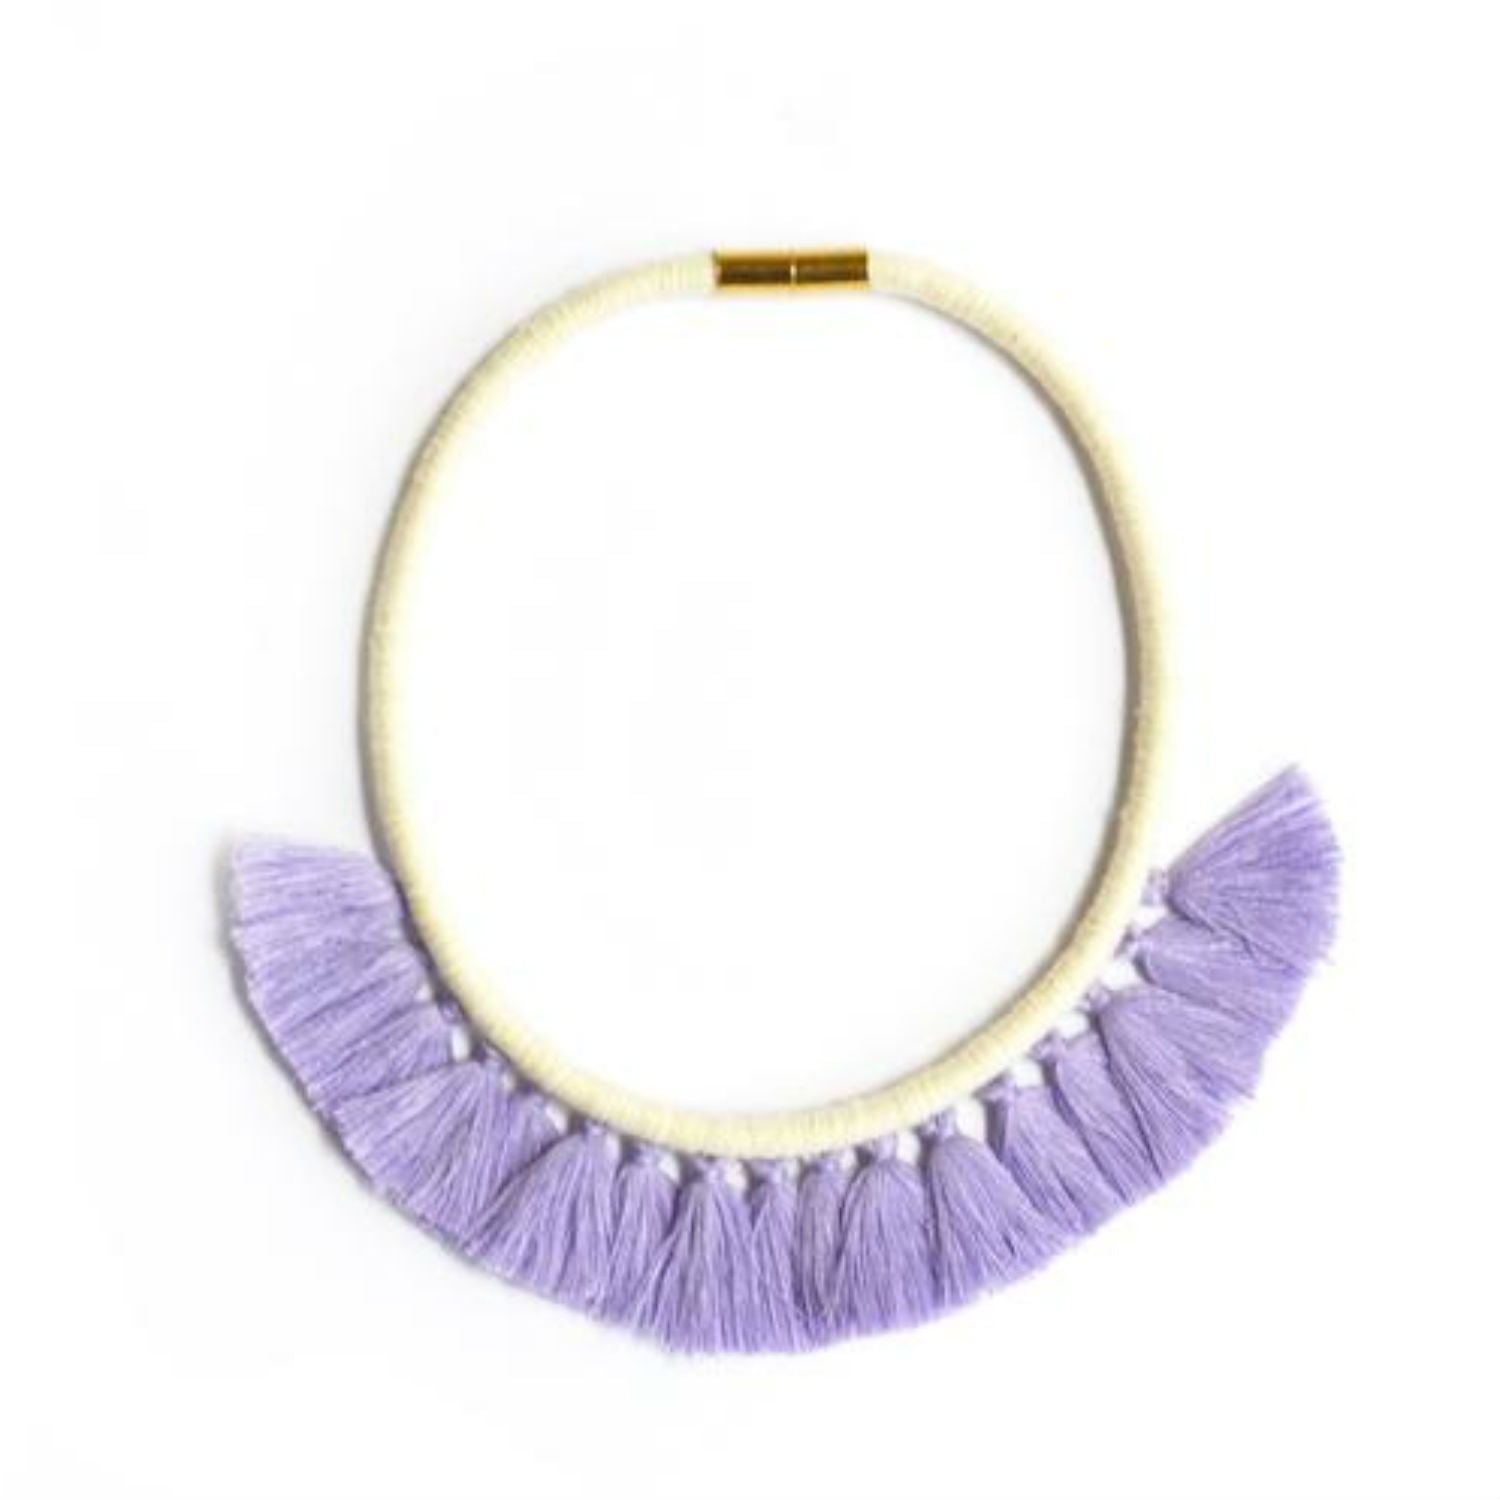 G+F Tassel Necklace - Lavender